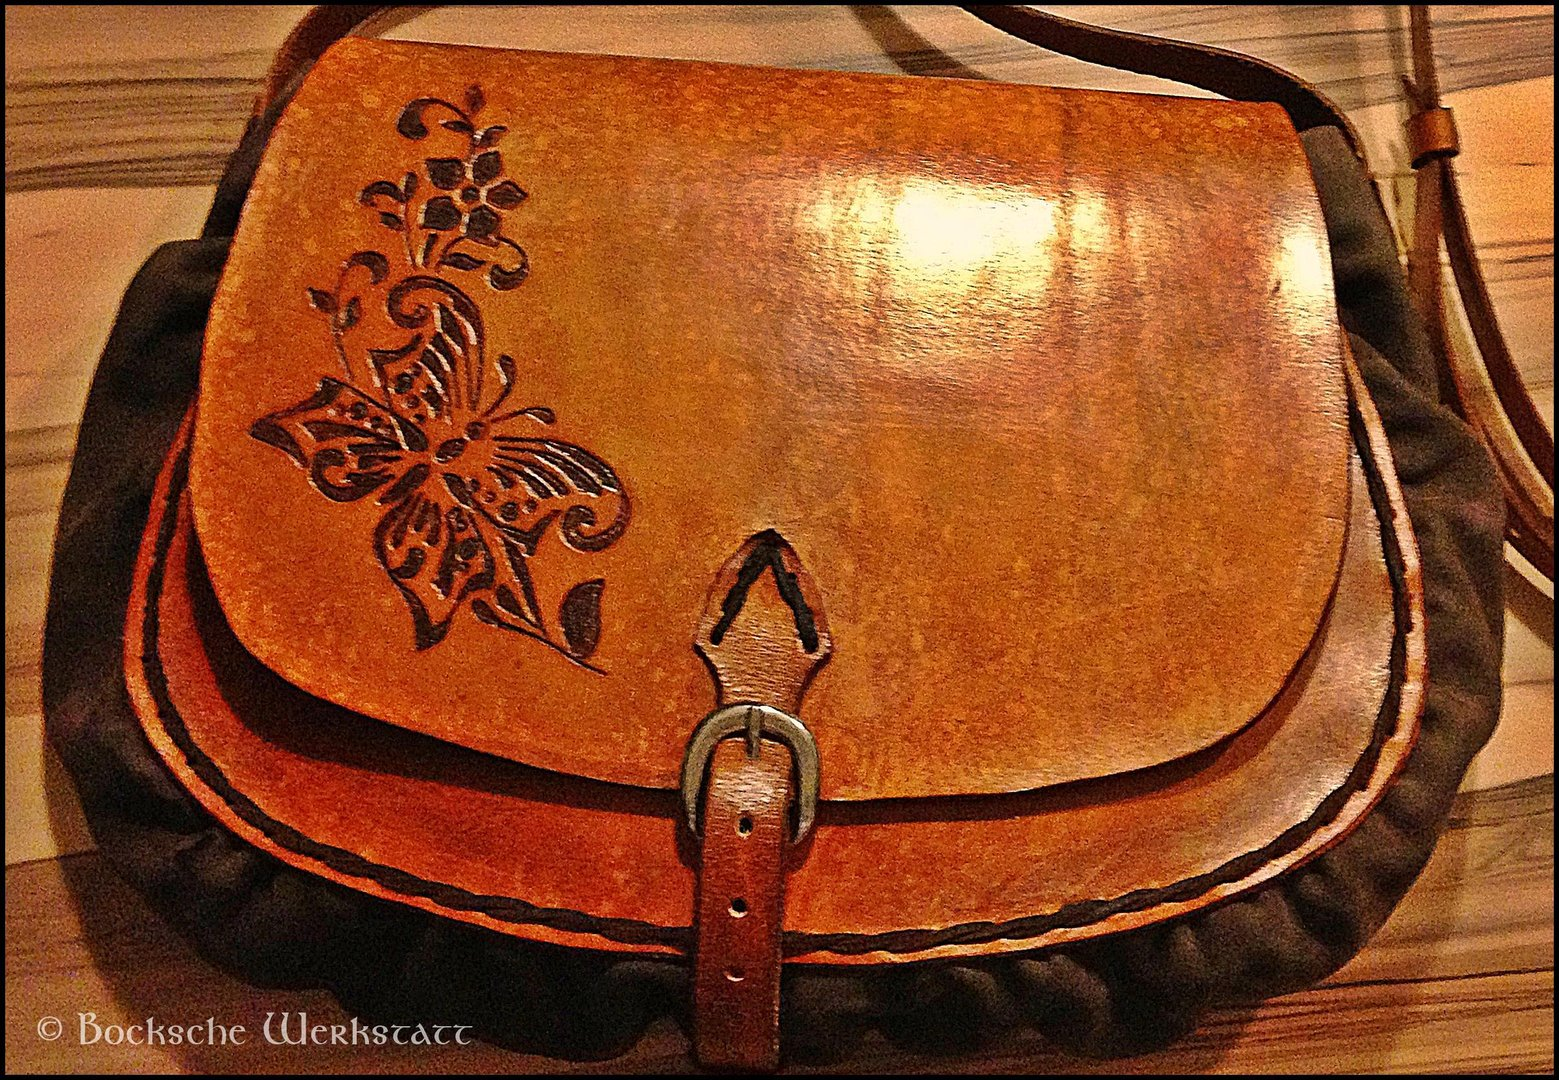 leatherbag with carving